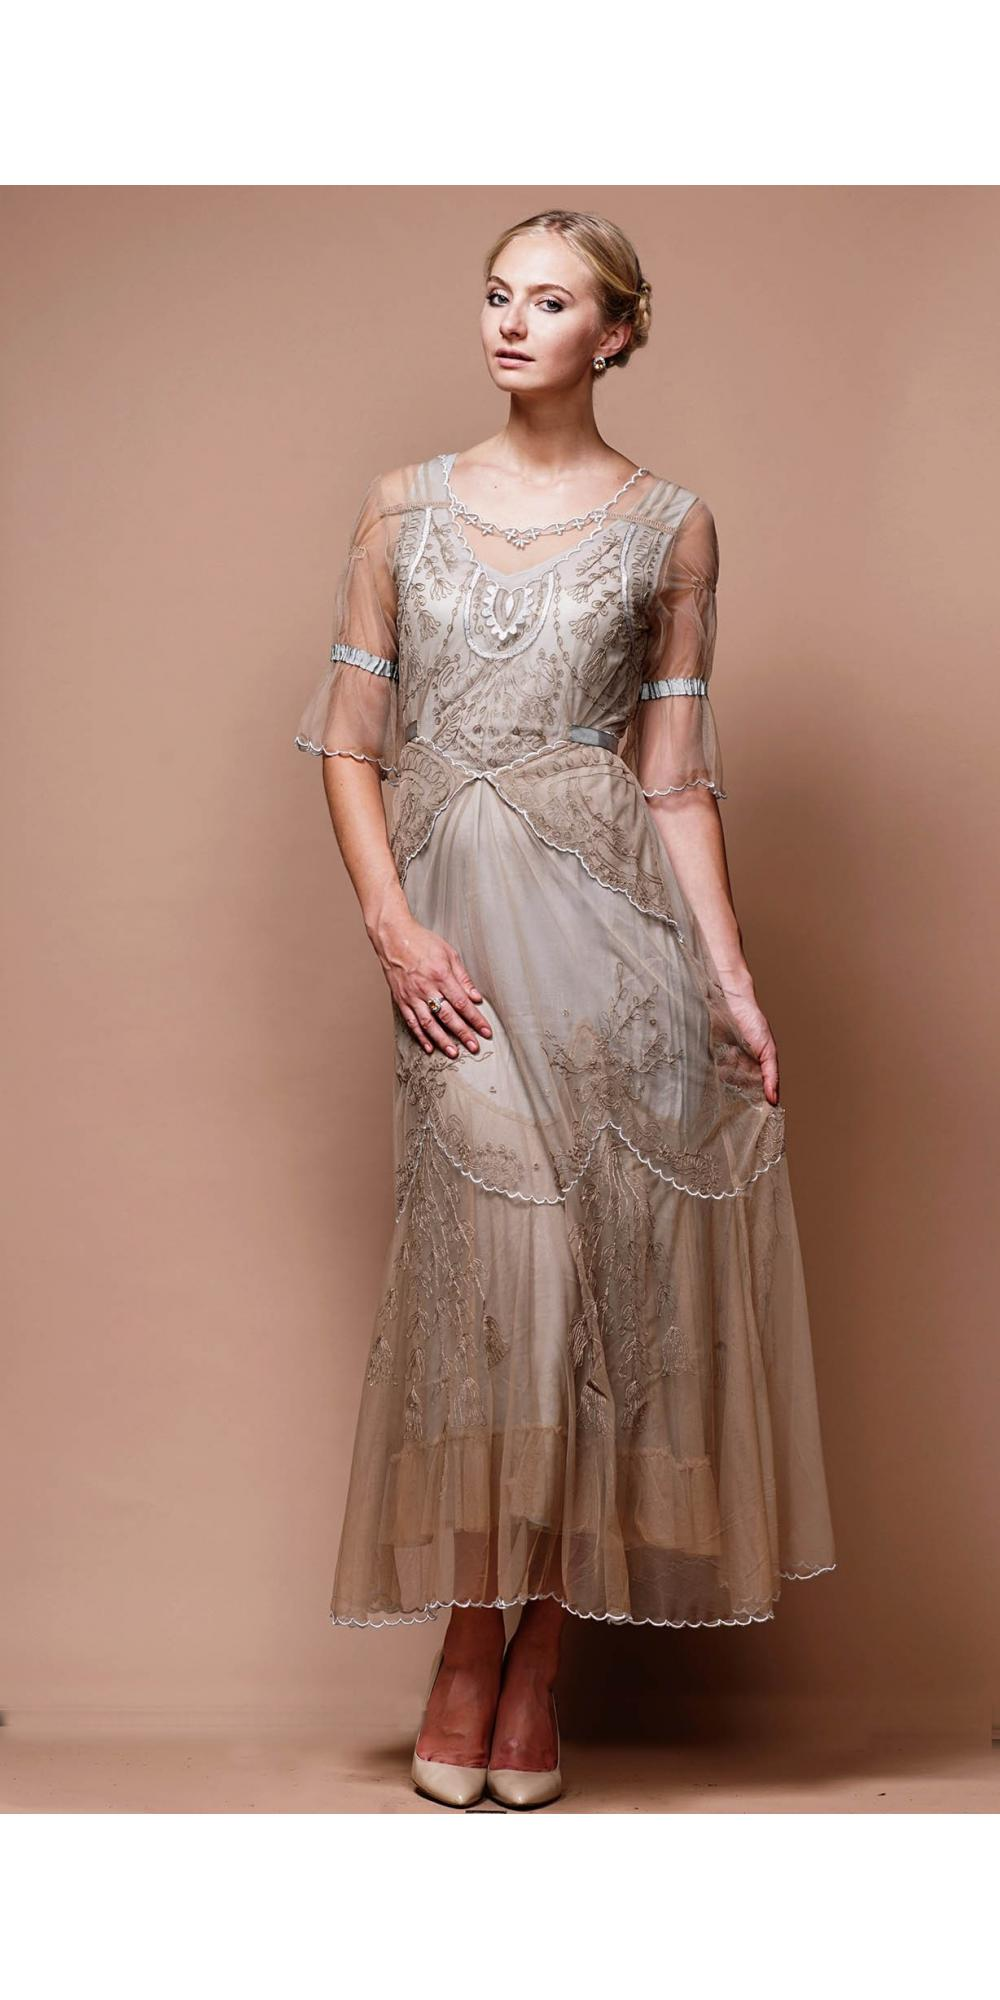 Edwardian Vintage Wedding Dress In Sand Silver By Nataya